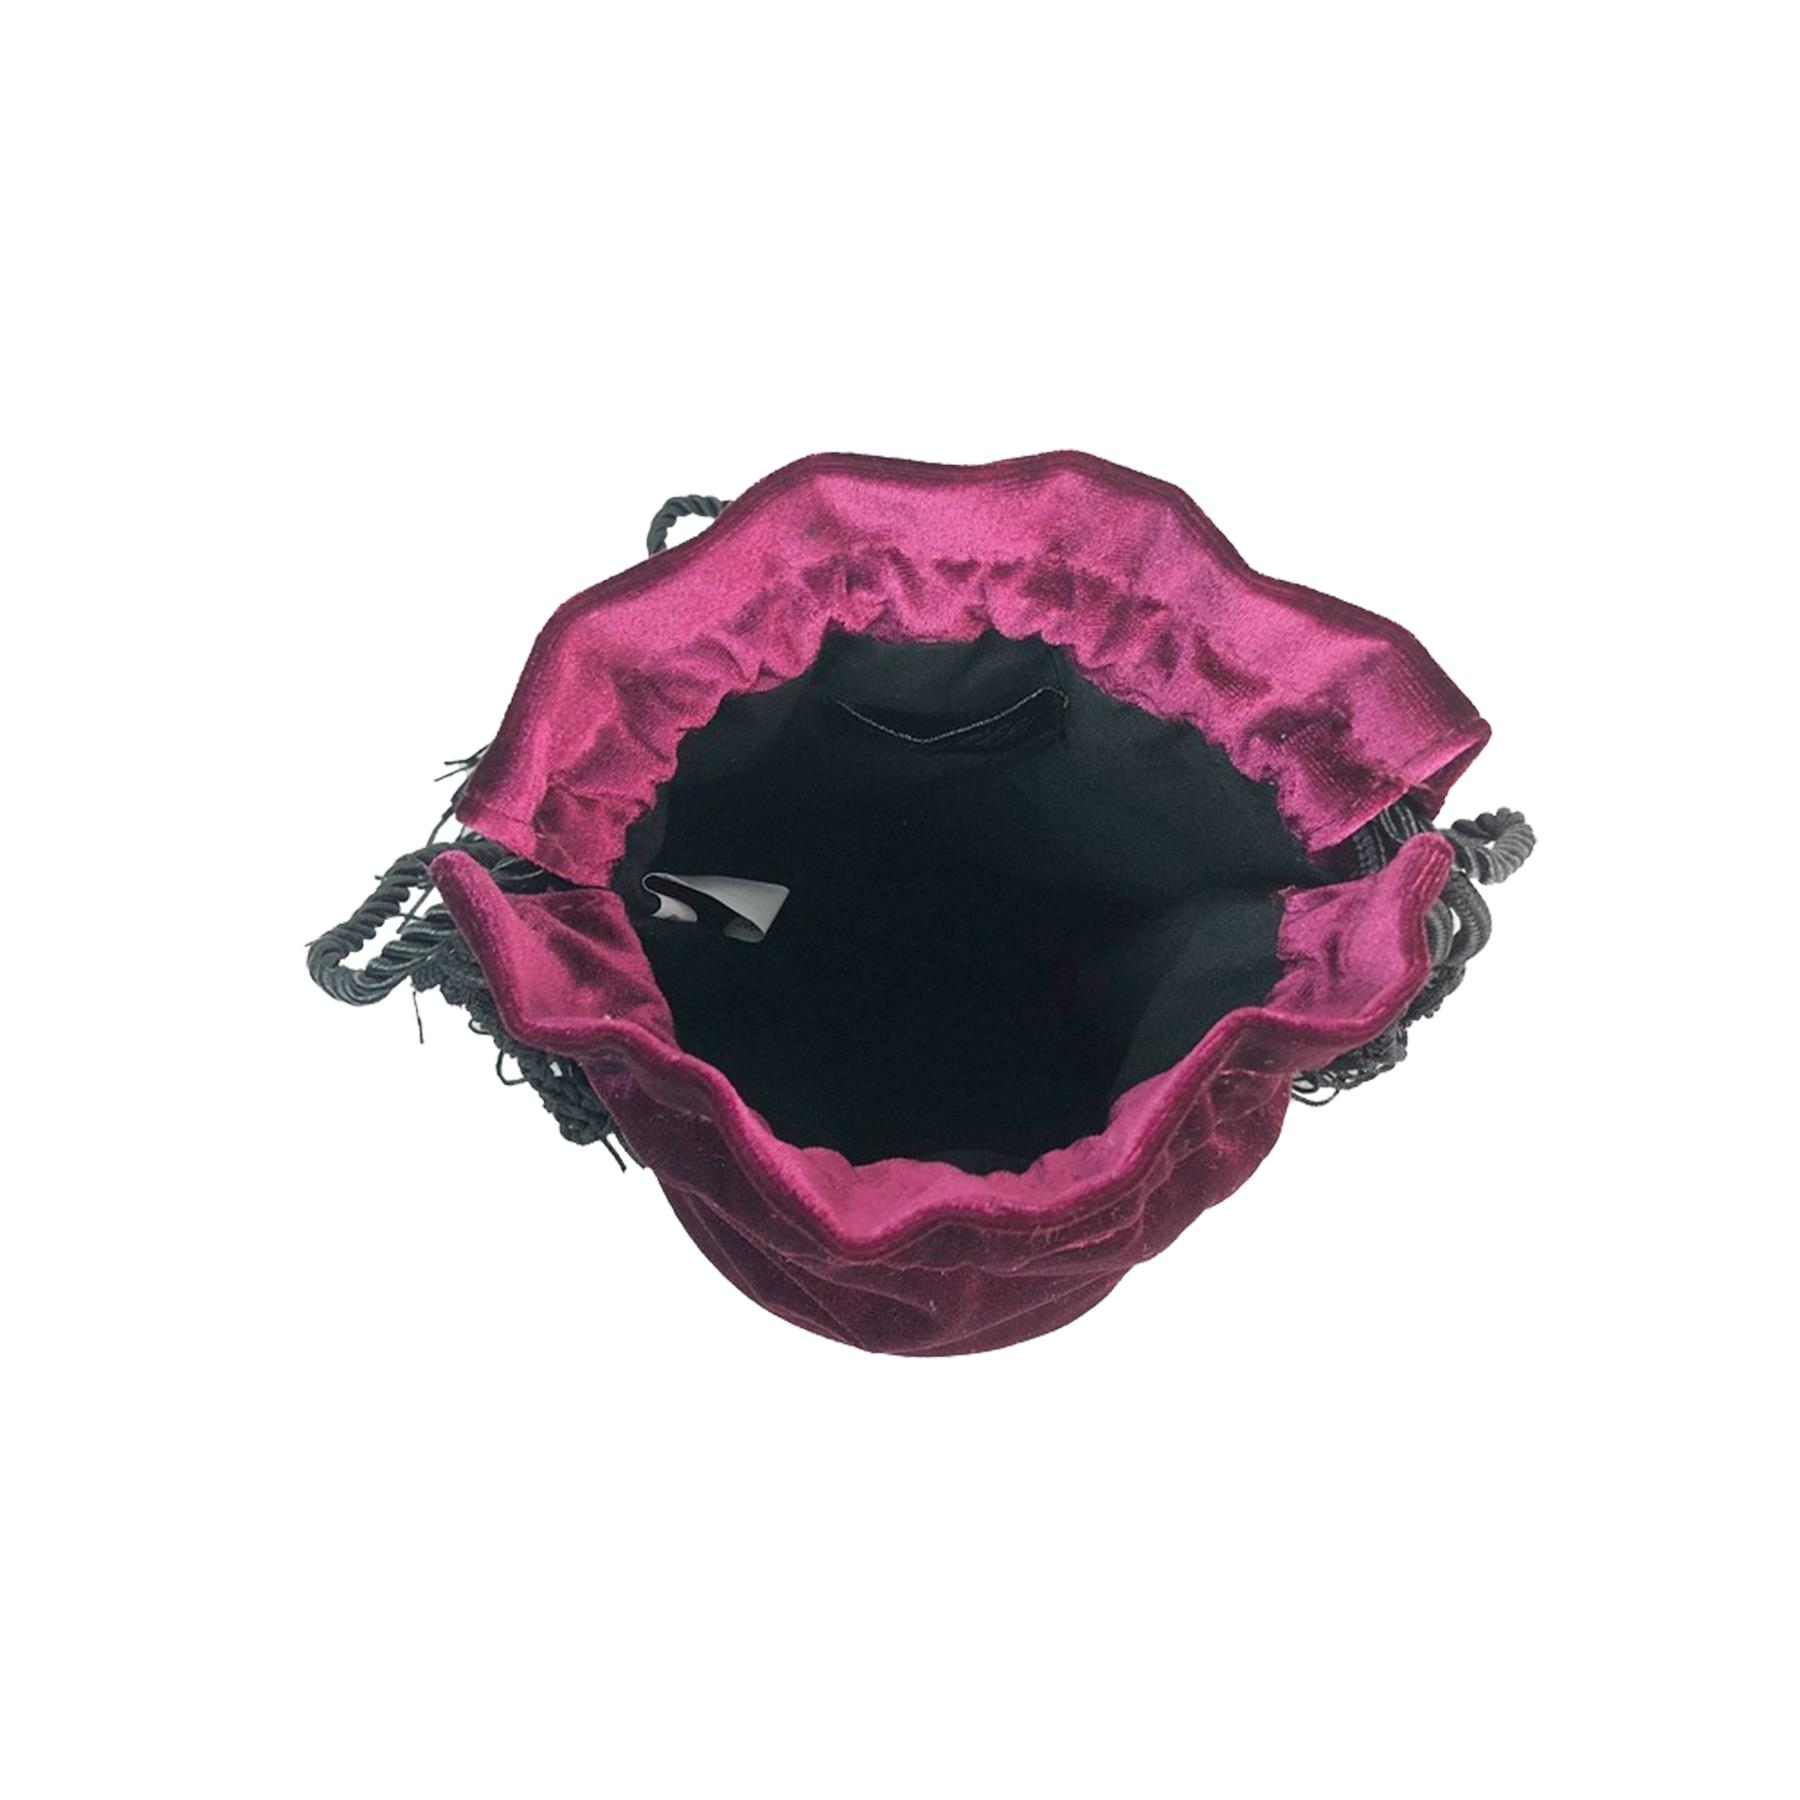 New-Women-s-Drawstring-Velvet-Velour-Tassels-Rope-Strap-Retro-Pouch-Bag thumbnail 10